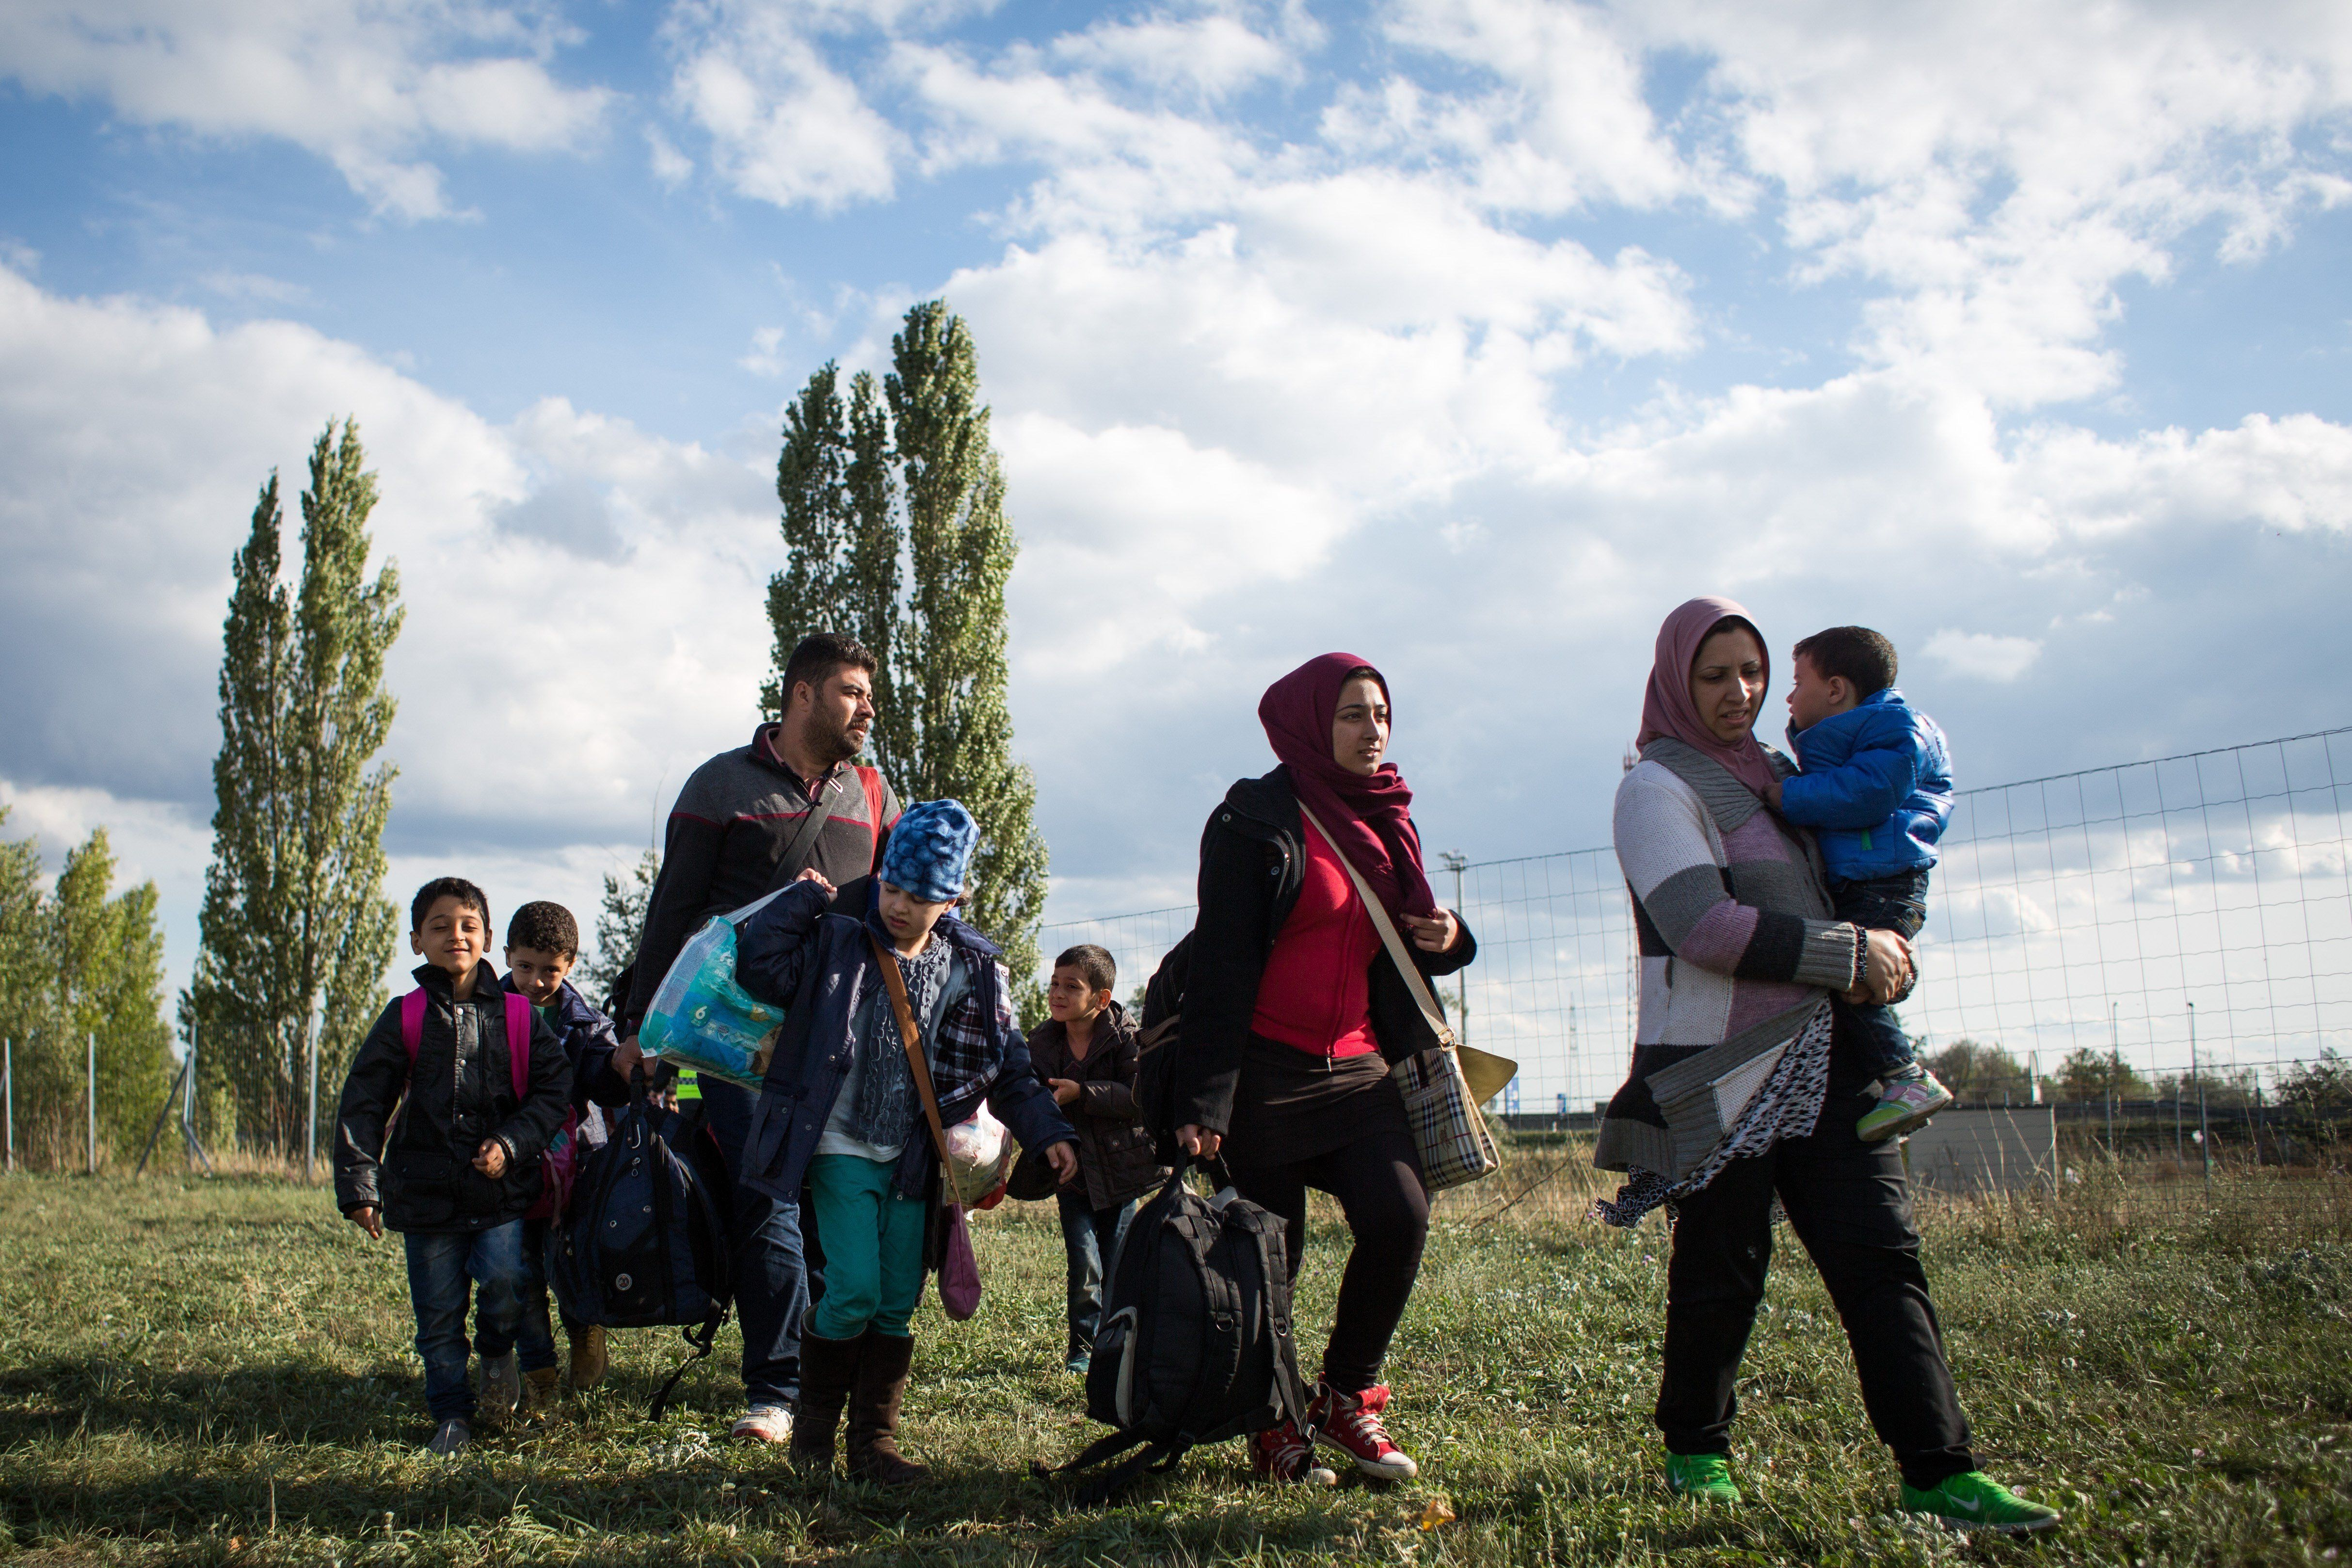 A refugee family from Iraq walks further in to Austria in Nickelsdorf at the Austrian-Hungarian border on September 20, 2015. Crowded aboard buses and trains, thousands more migrants flooded into Austria from countries unable or unwilling to cope with a desperate human tide fleeing war and poverty for a better life in western Europe. AFP PHOTO / VLADIMIR SIMICEK        (Photo credit should read Vladimir Simicek/AFP/Getty Images)